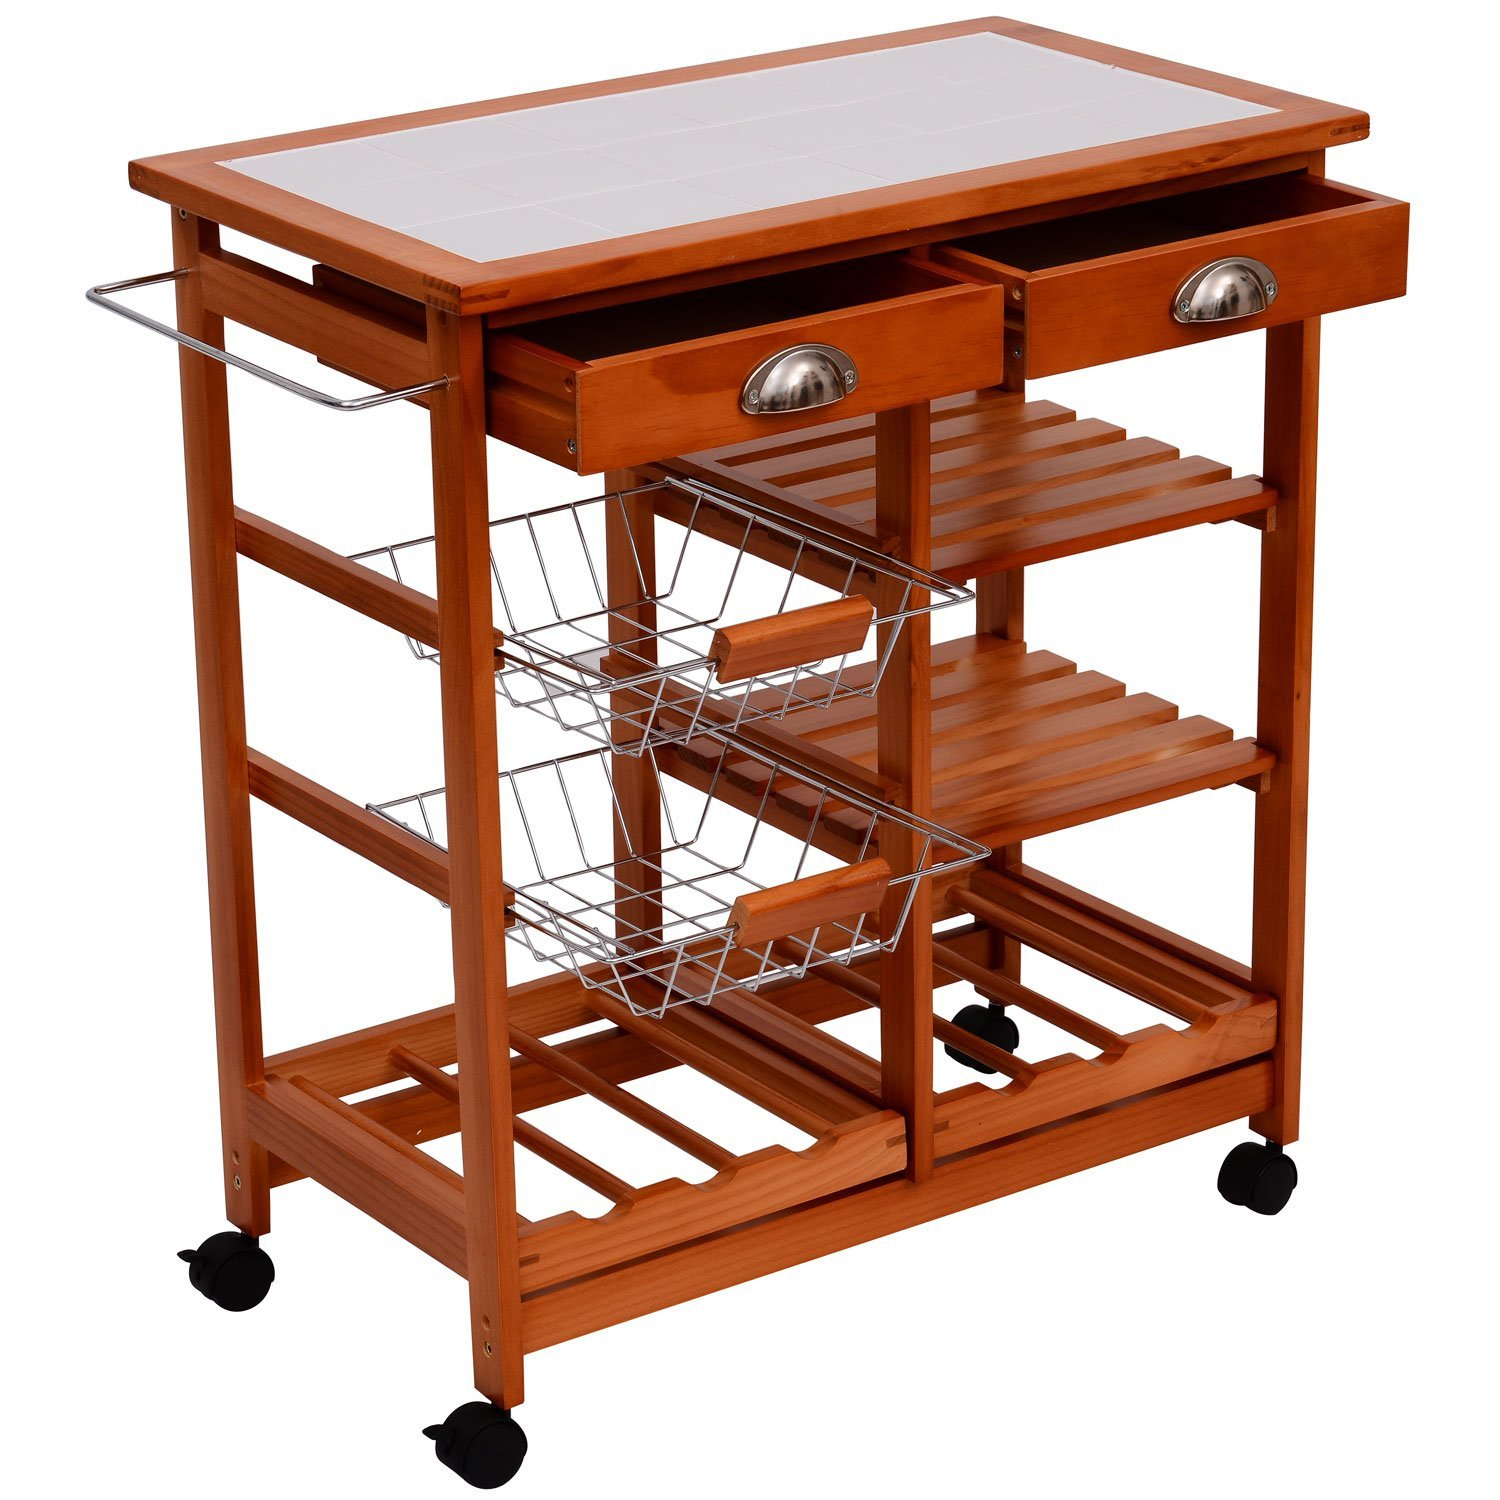 Granite Top Kitchen Trolley Amazoncom Homcom 29 Inch Portable Rolling Tile Top Kitchen